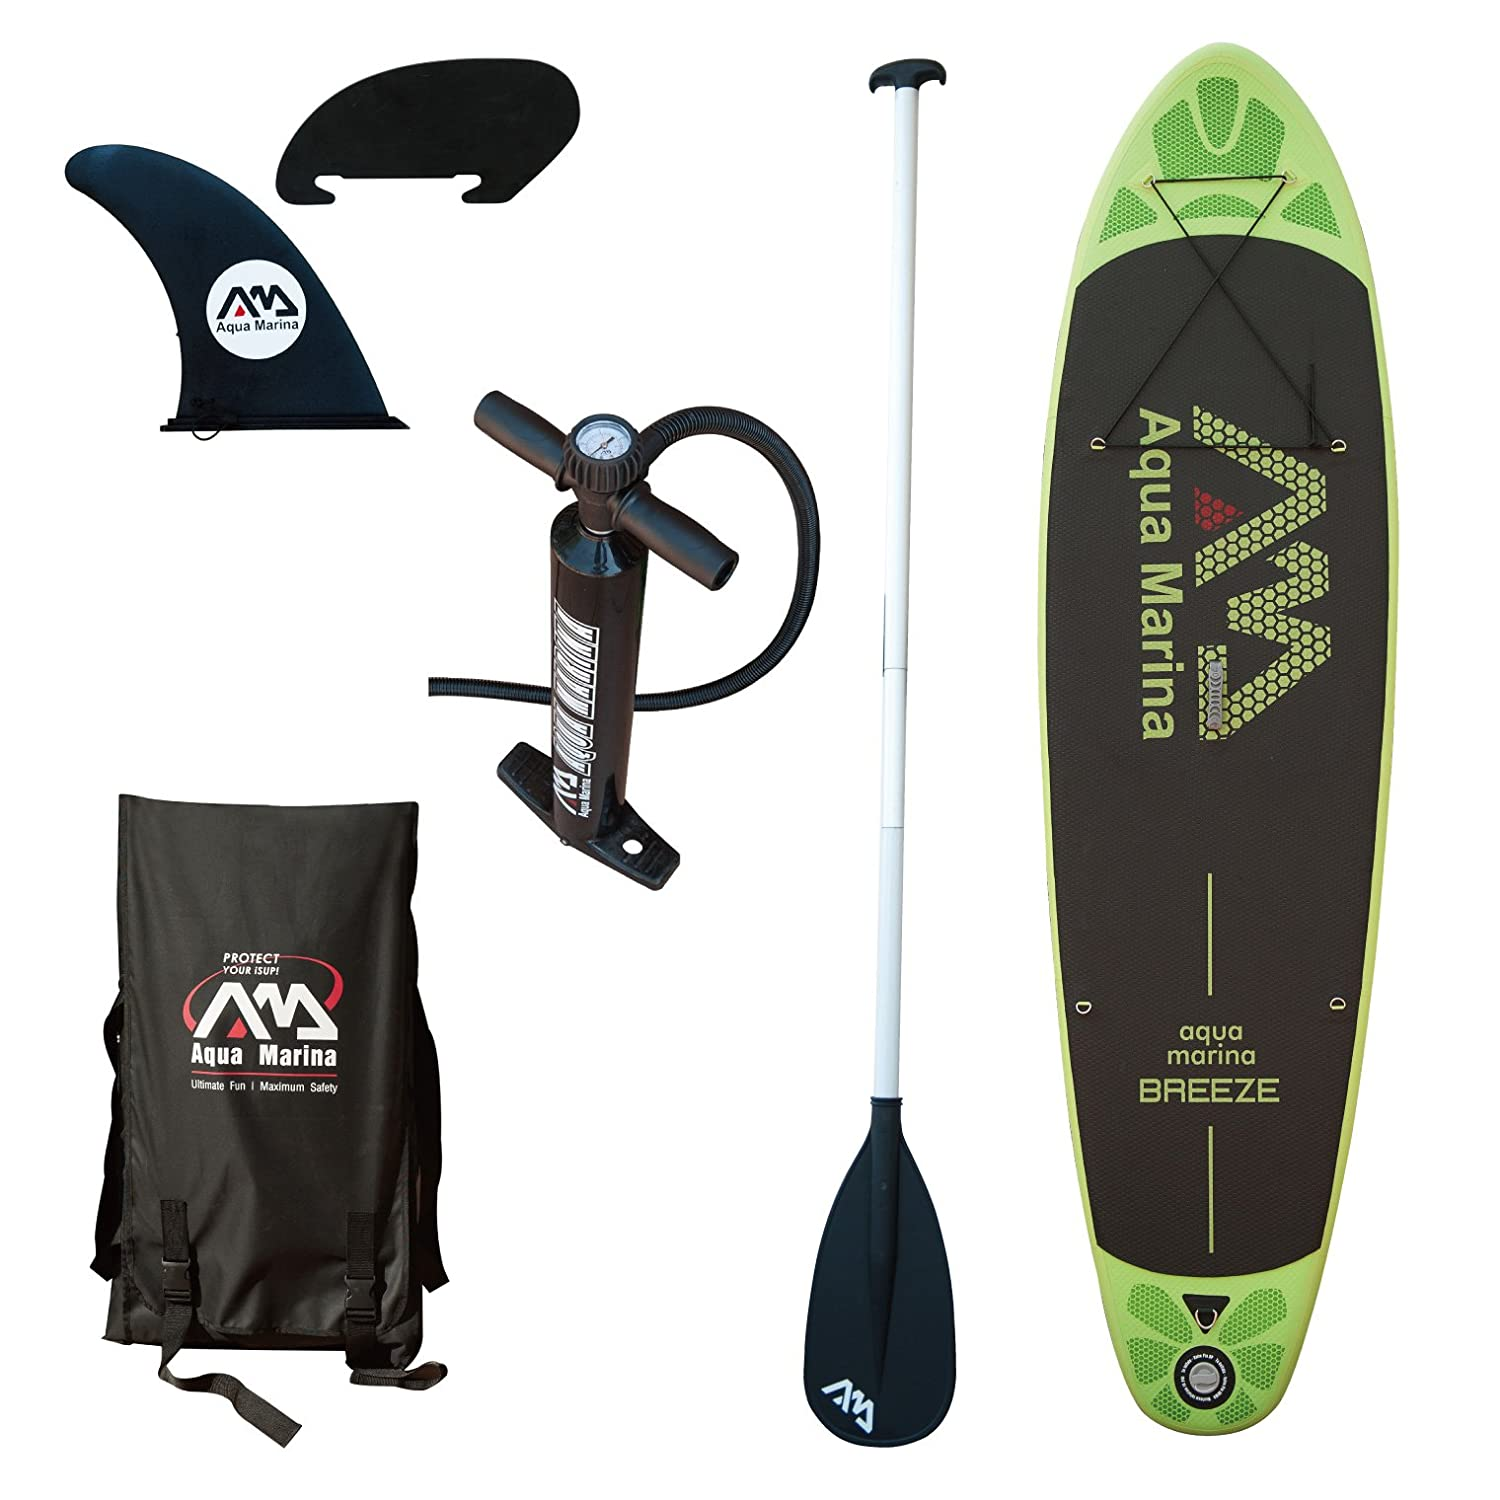 71teZXYDhqL. SL1500 Stand up Paddle Board Accessories